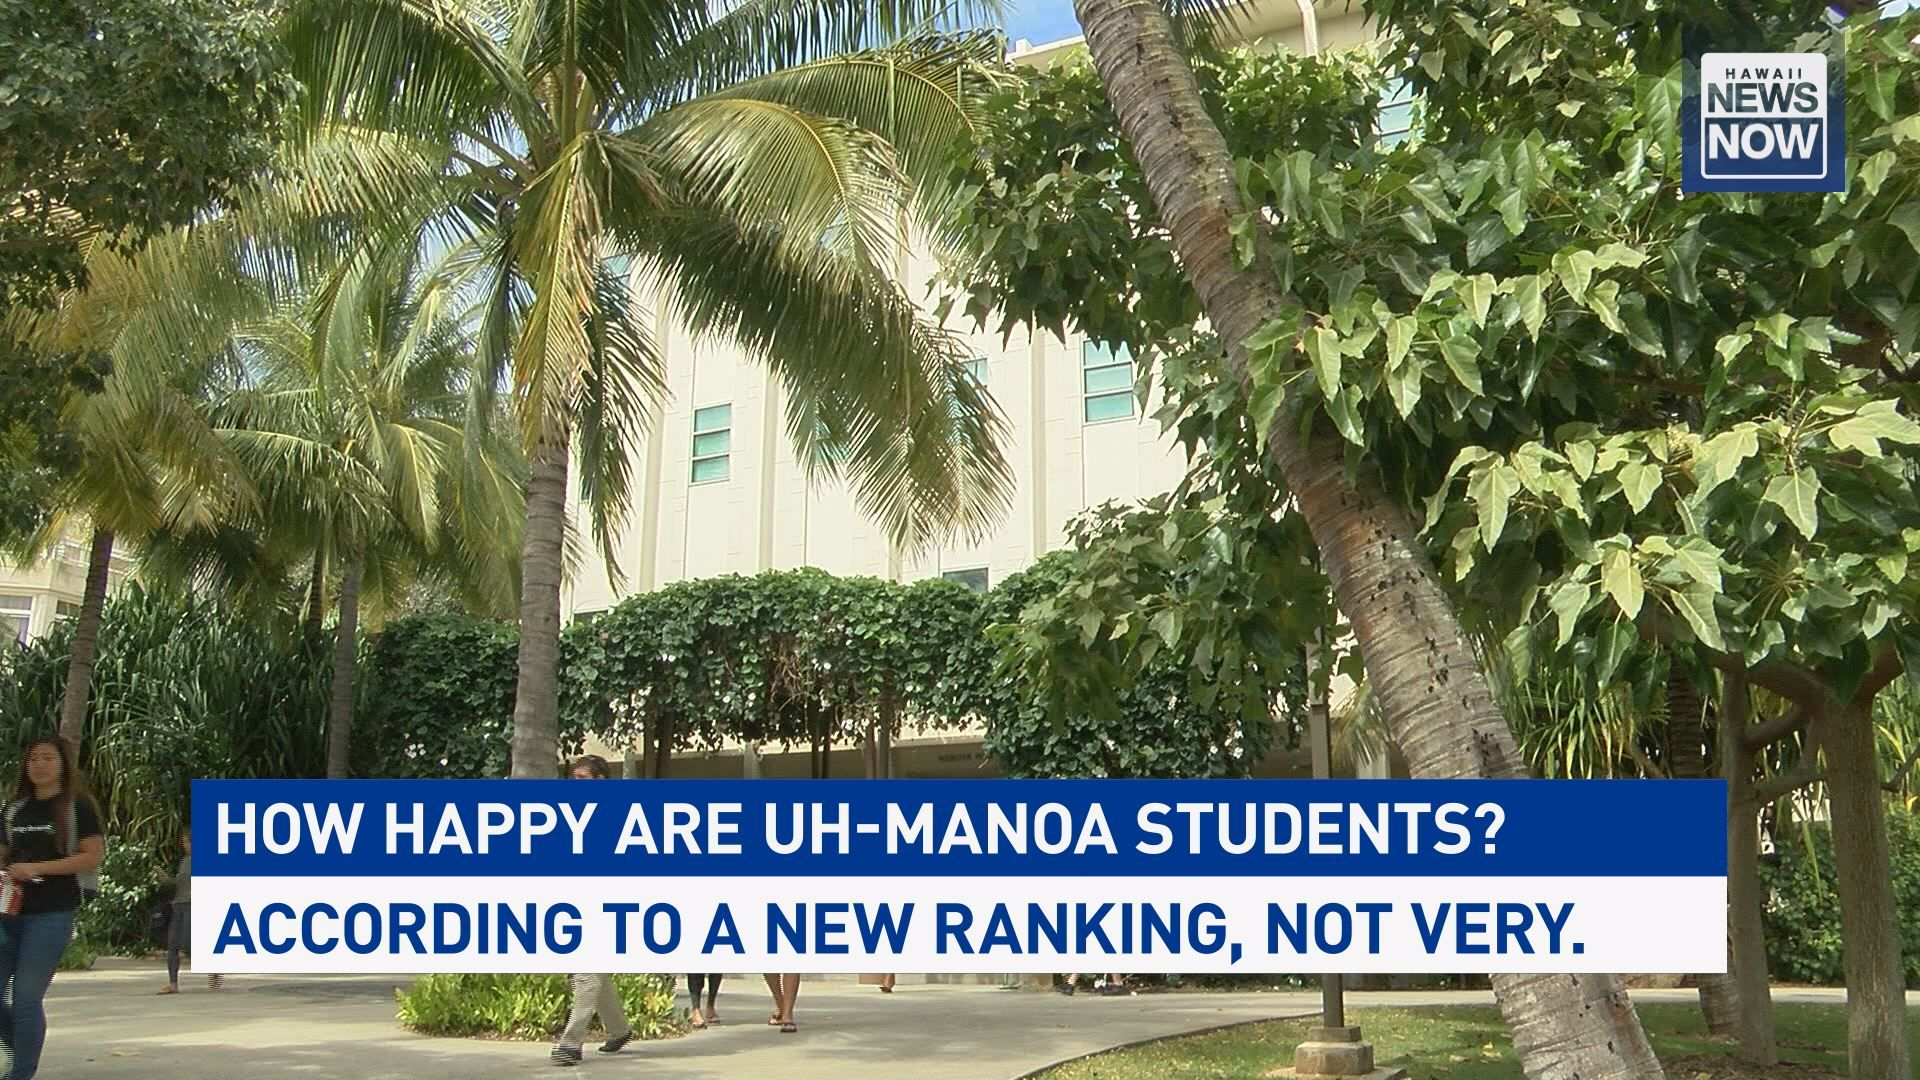 How happy are UH-Manoa students? According to one ranking